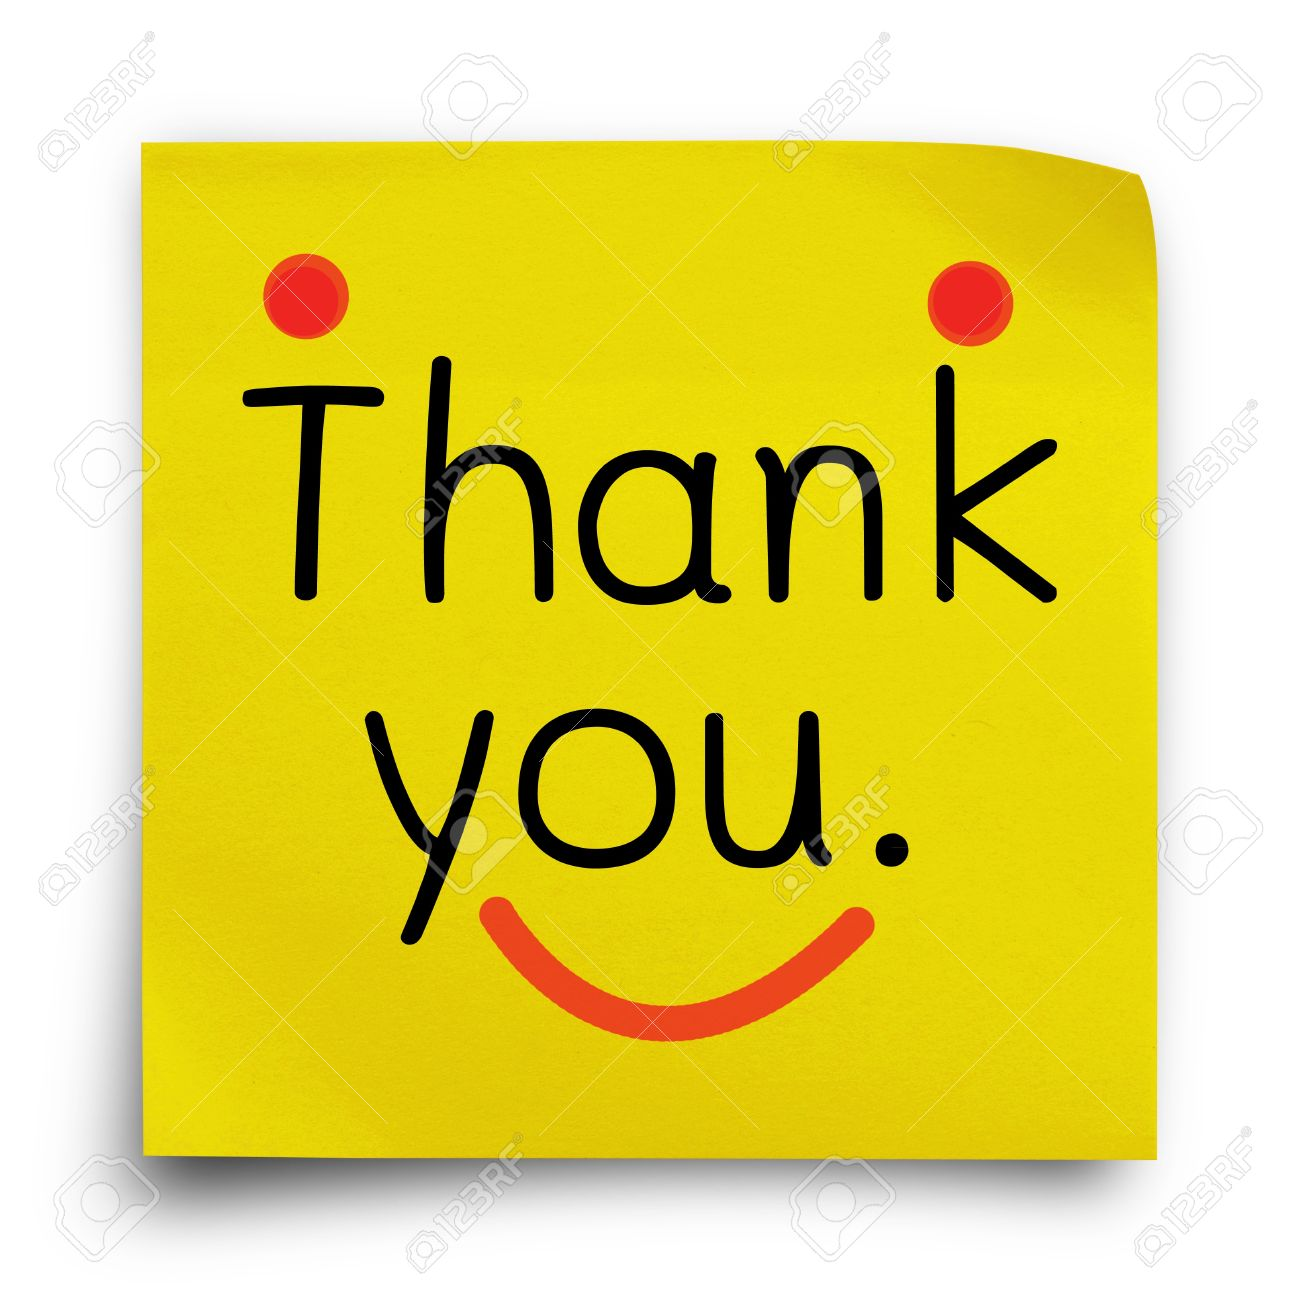 smiley face thank you images stock pictures royalty smiley smiley face thank you thank you word on yellow sticker paper note on white background